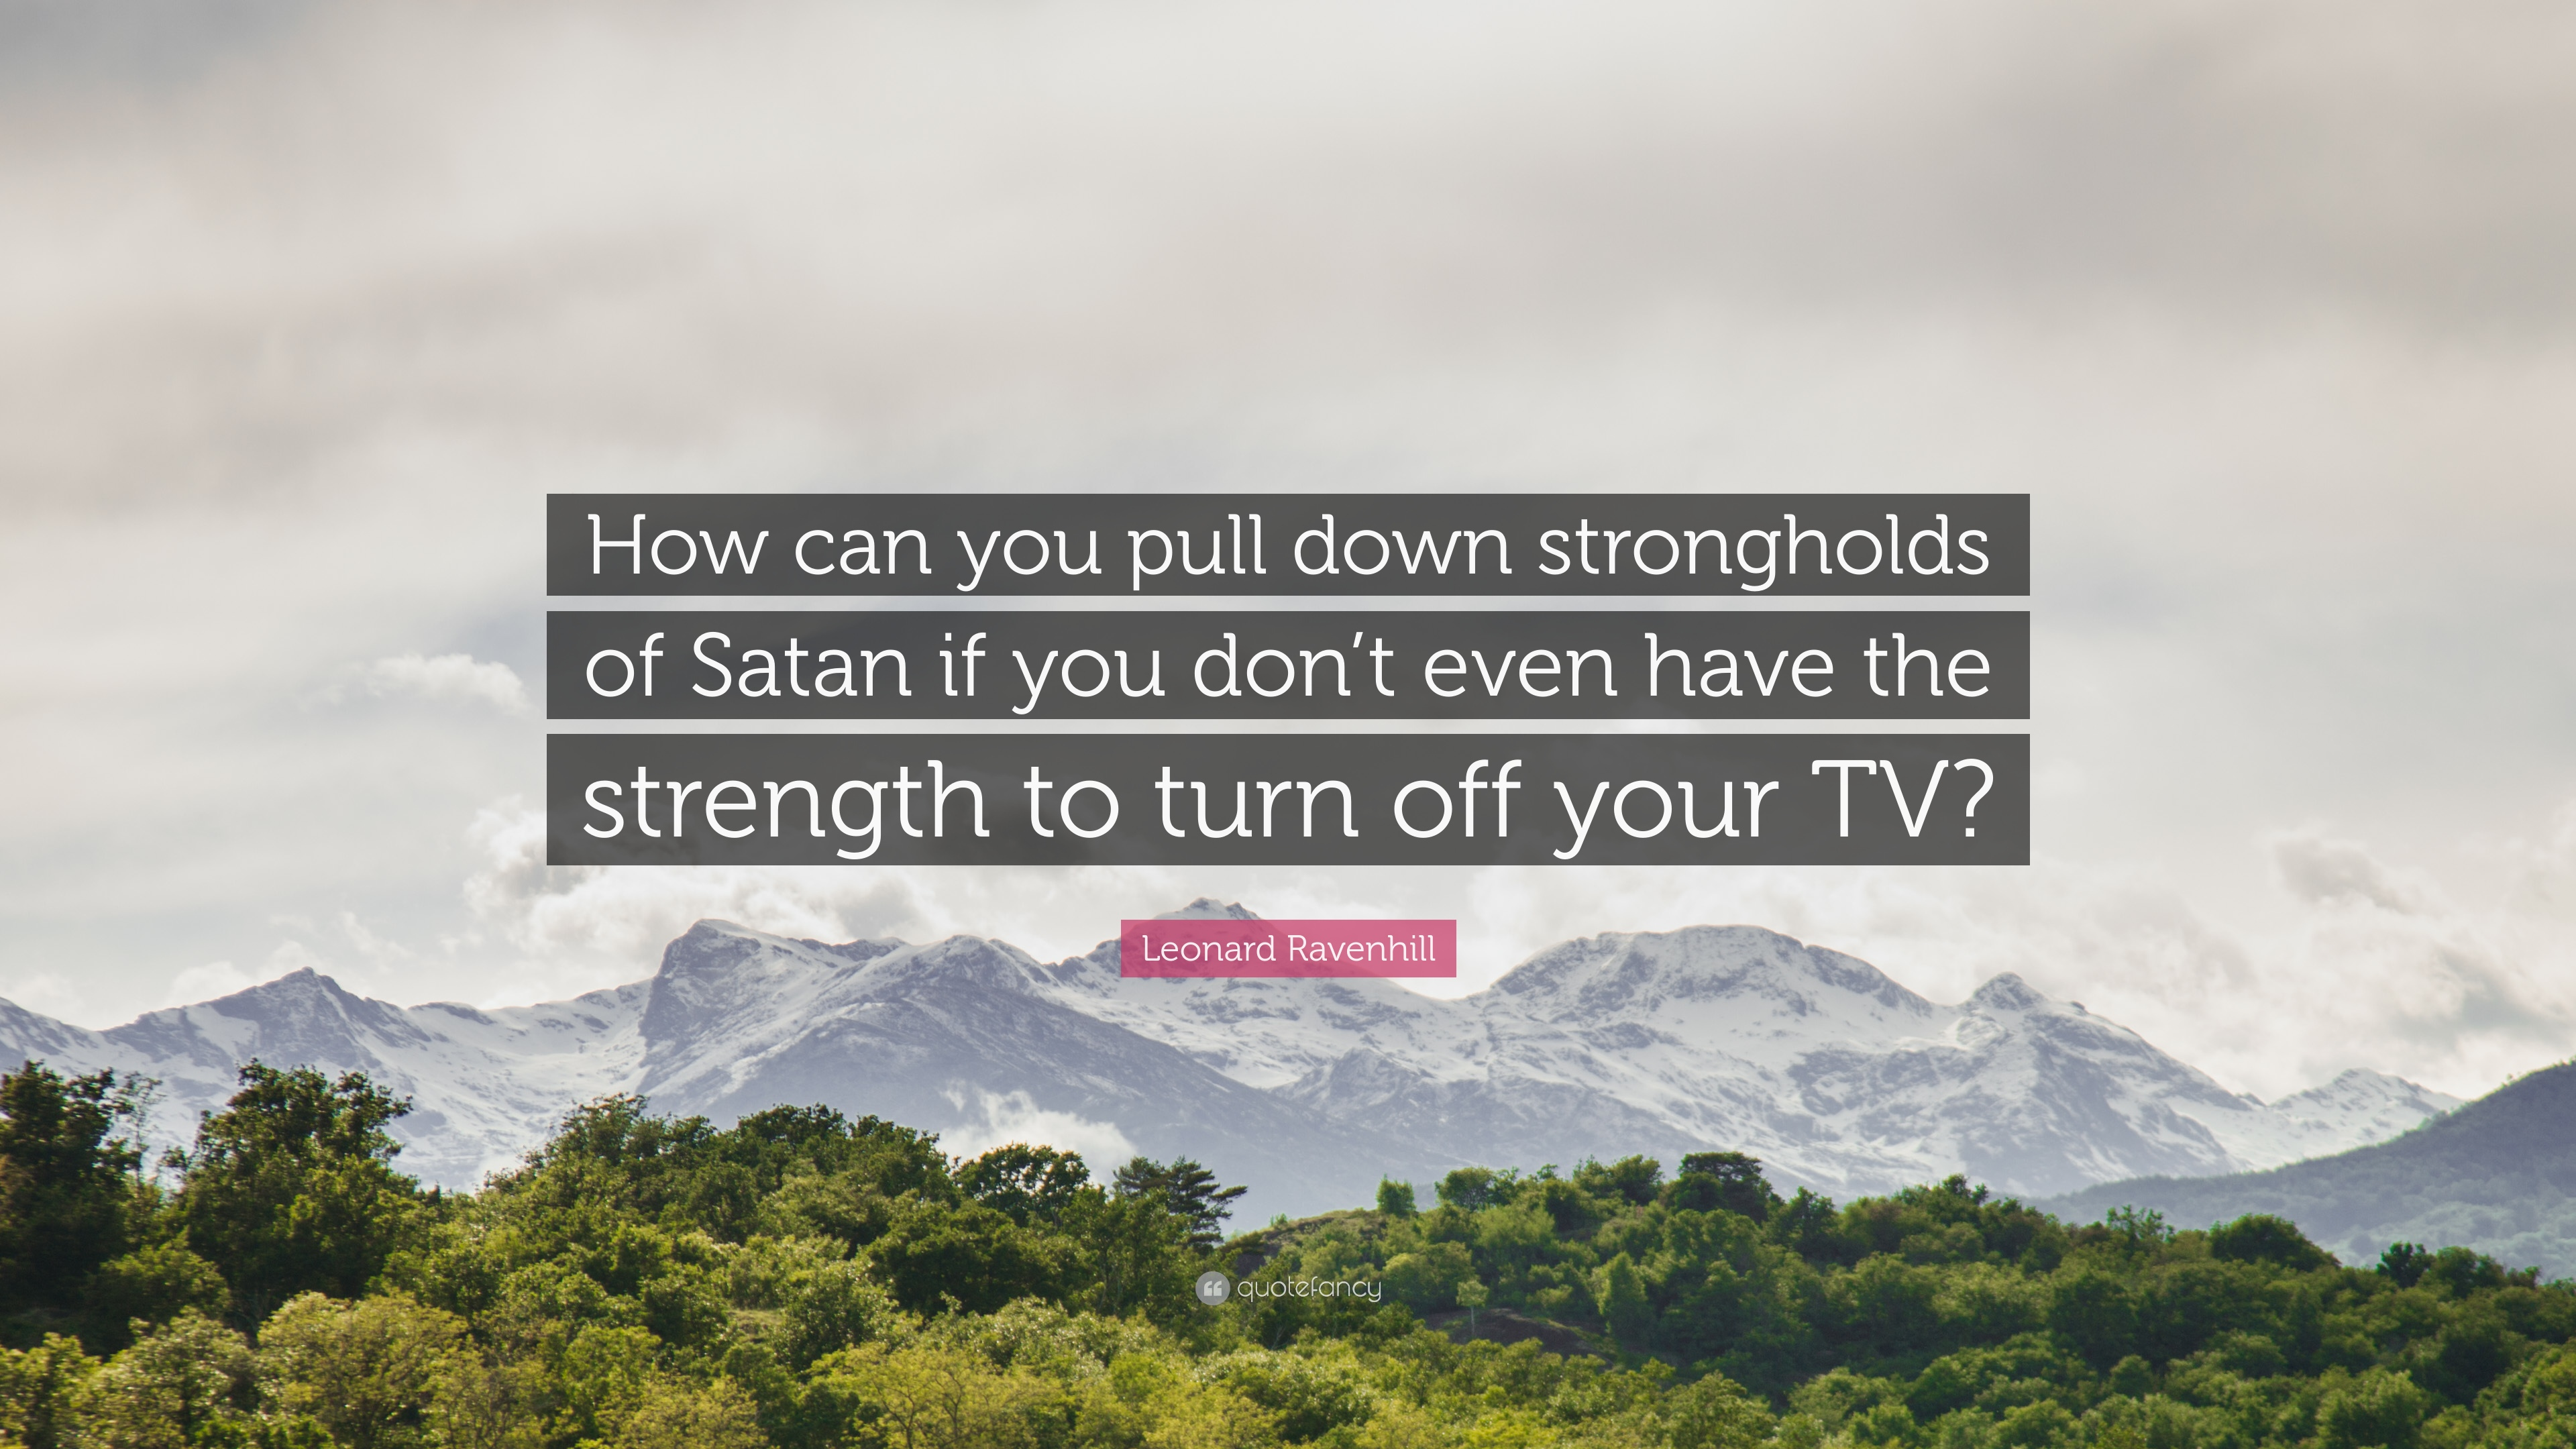 Leonard Ravenhill Quote How Can You Pull Down Strongholds Of Satan If Don